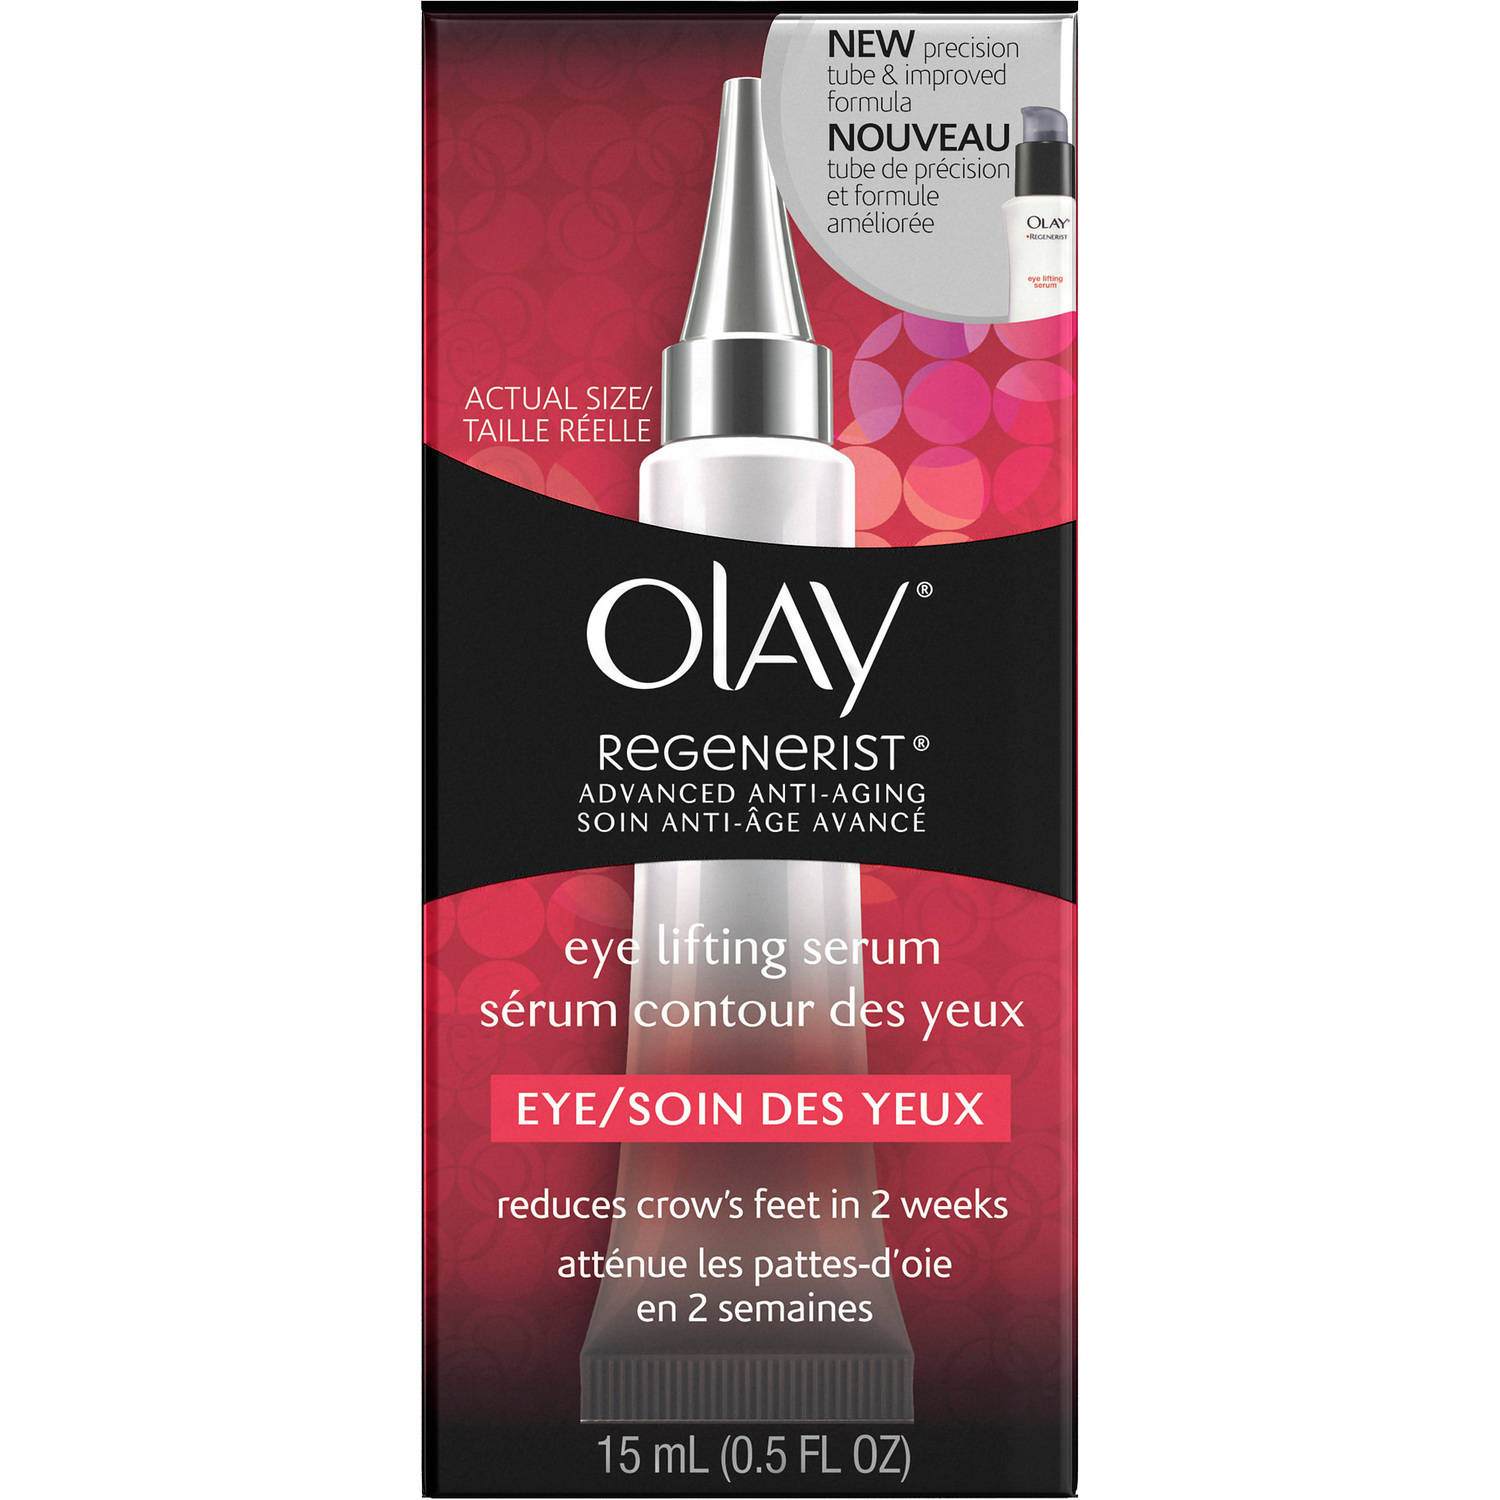 Olay Regenerist Eye Lifting Serum, 0.5 fl oz